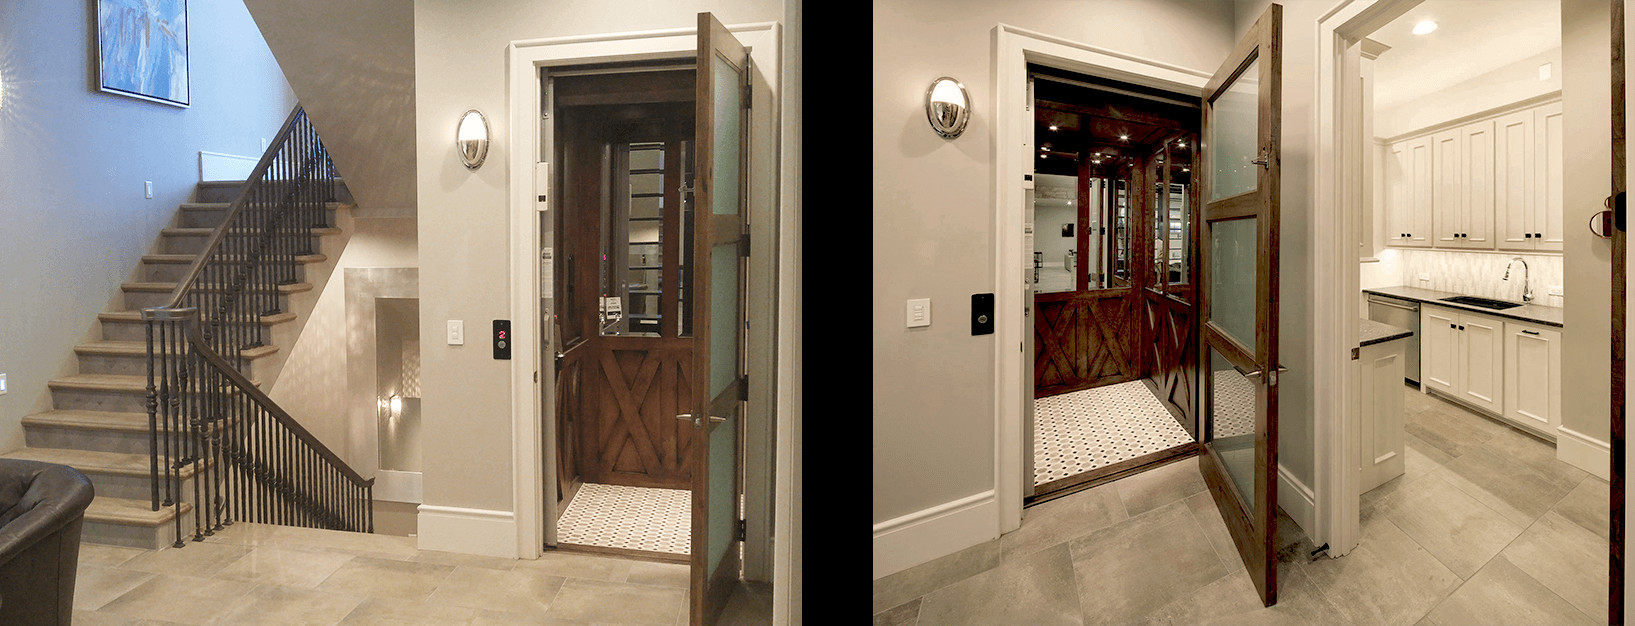 Best ideas about DIY Home Elevators . Save or Pin Home Elevator Kit Residential Elevators are Not DIY Now.